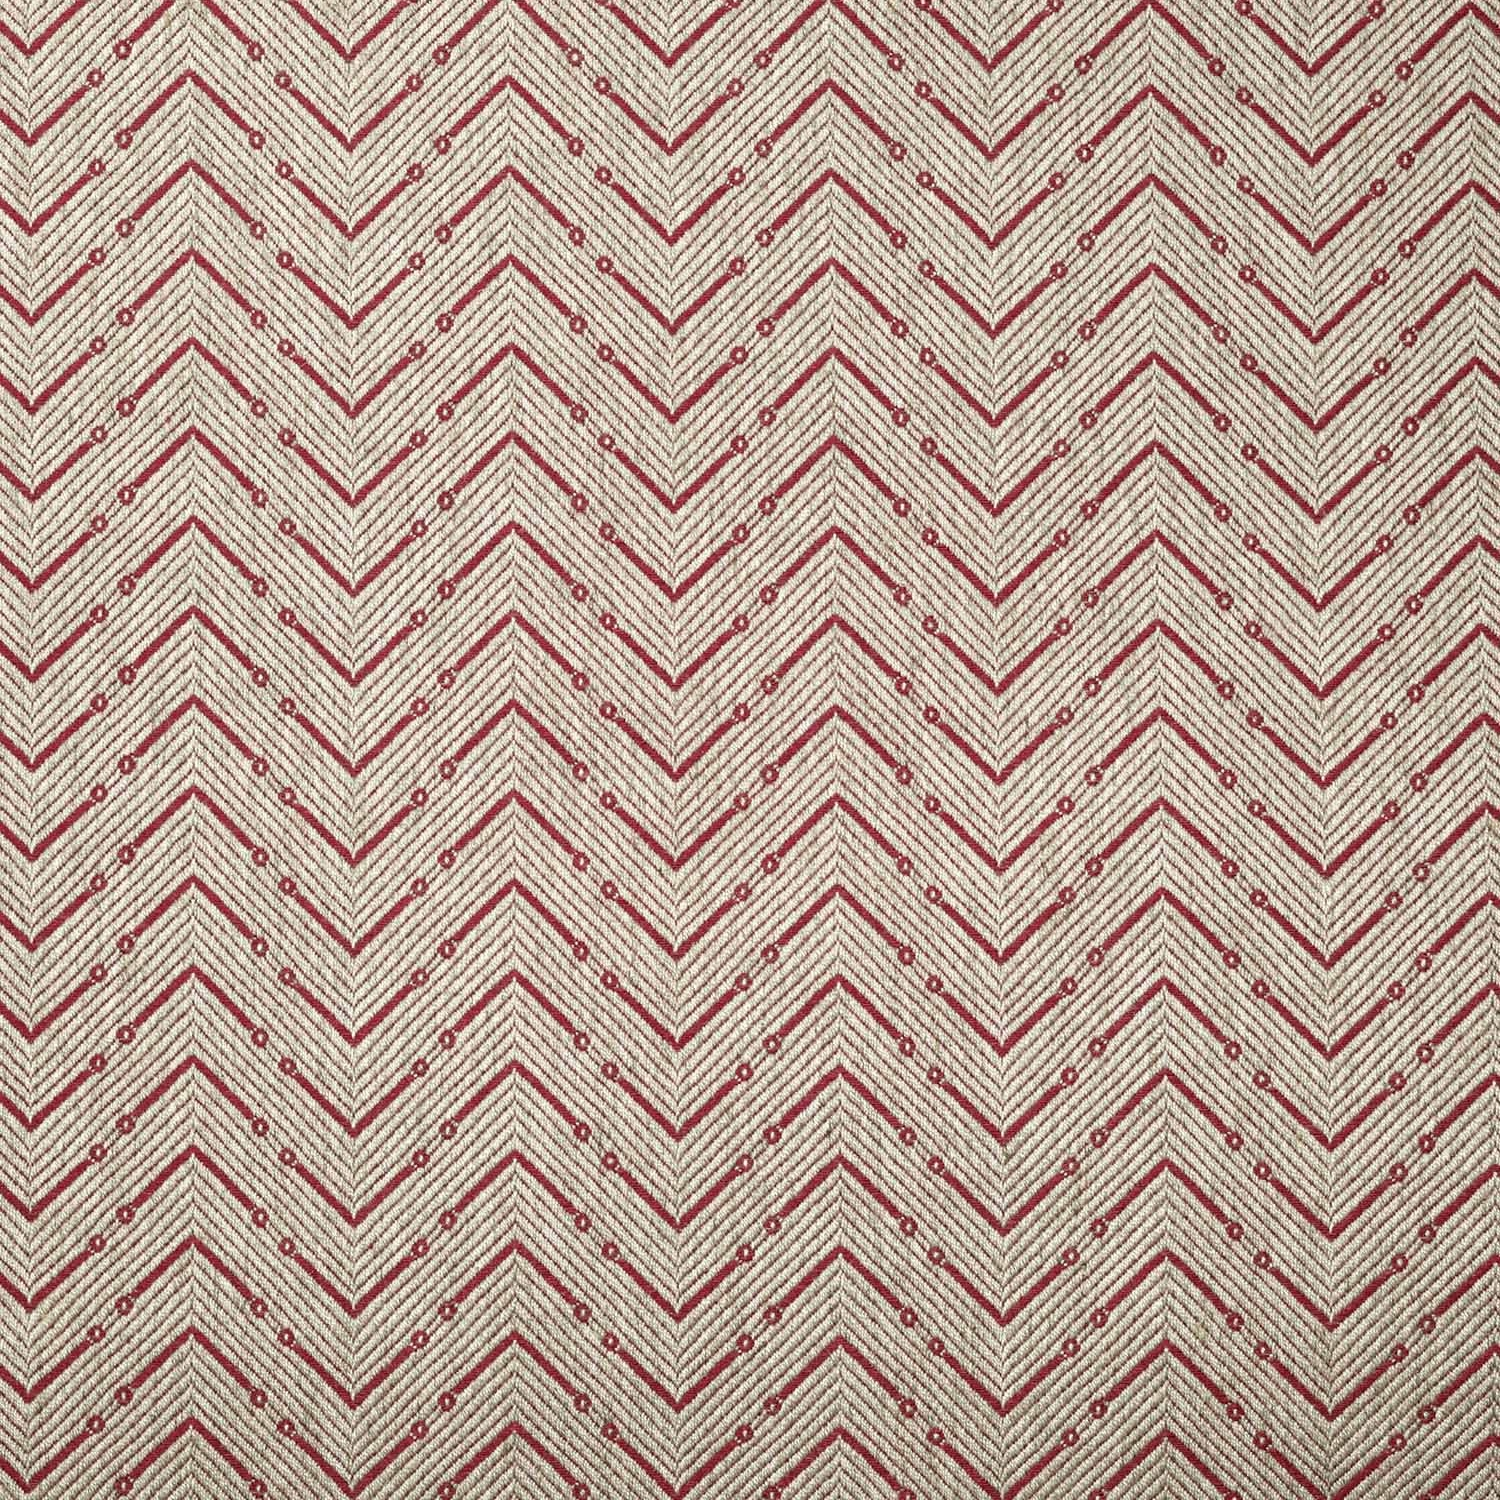 <p><strong>COLBY</strong>red 1210-05<a href=/the-winthorp-collection/colby-red-1210-05>More →</a></p>